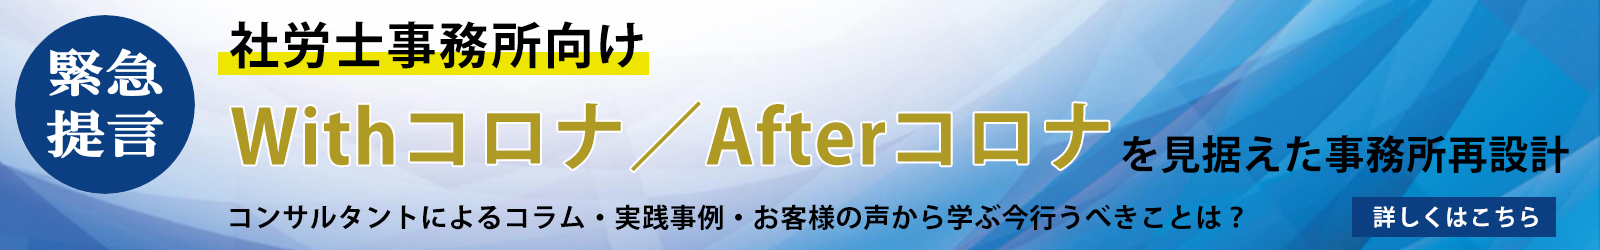 Withコロナ/Afterコロナ